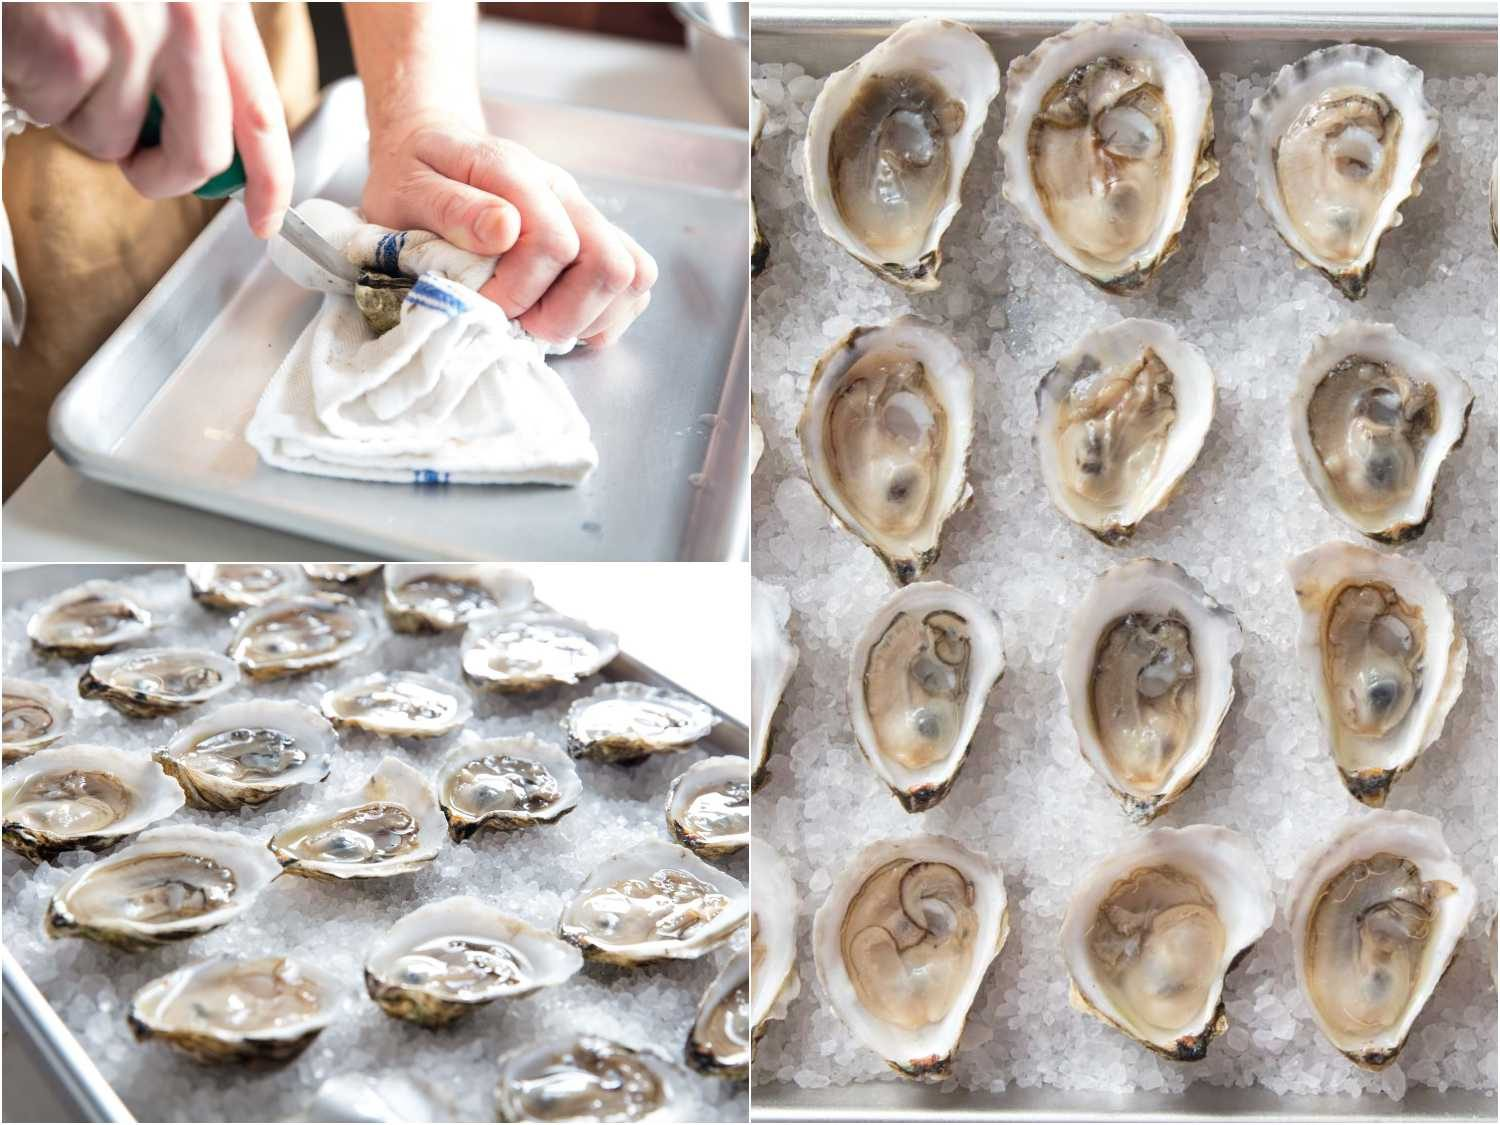 Shucking oysters and placing them on rock salt for oysters Rockefeller.